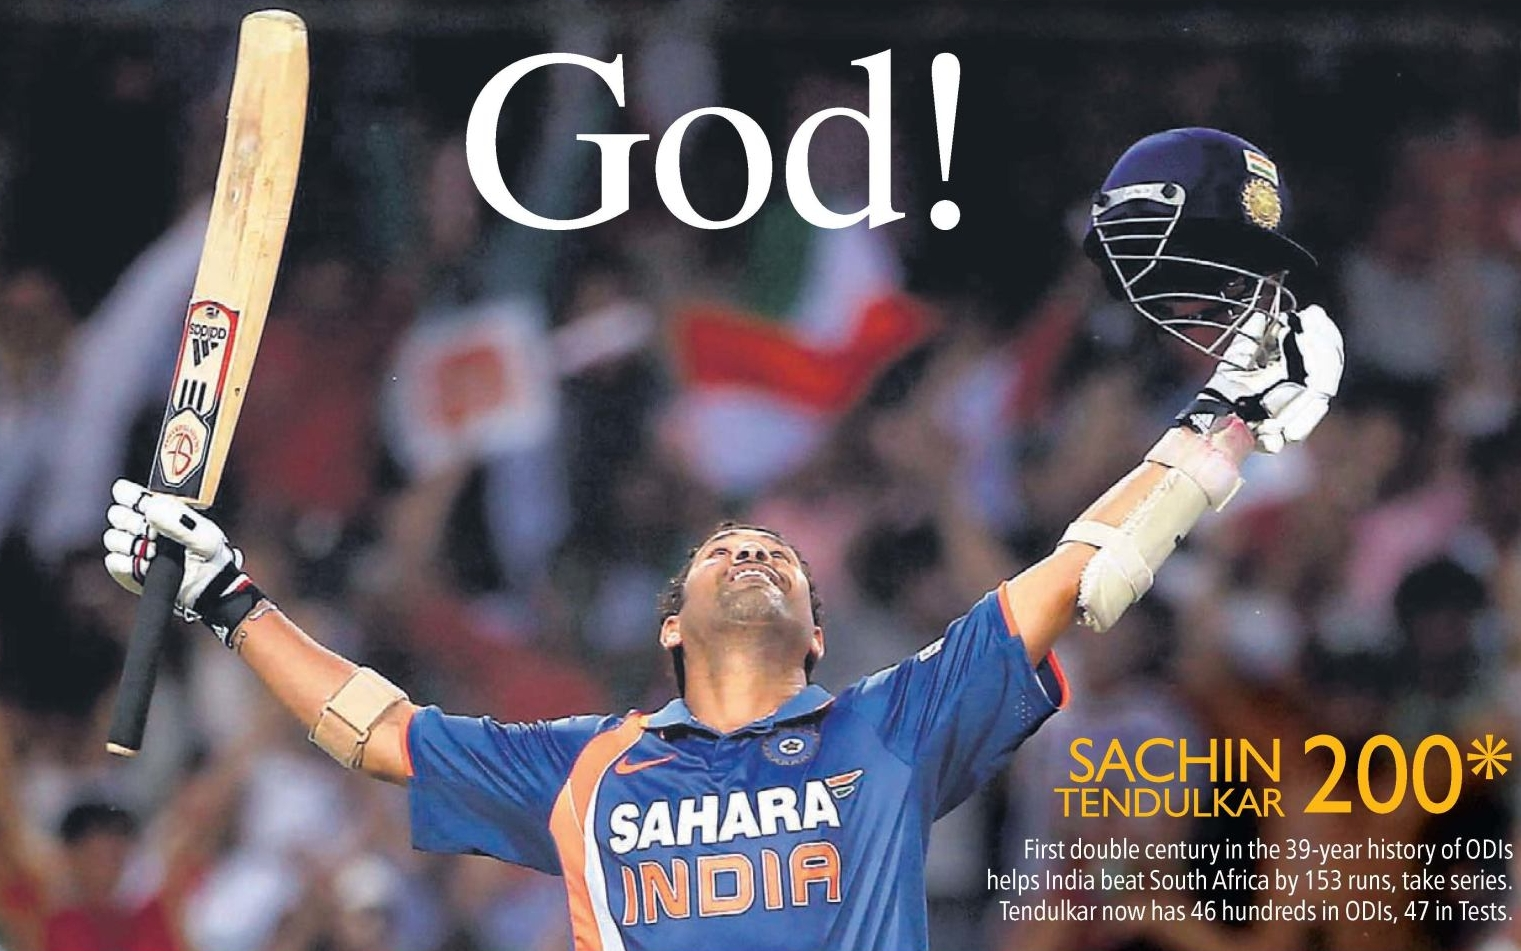 Sachin tendulkar scored 200 against south africa in ODI